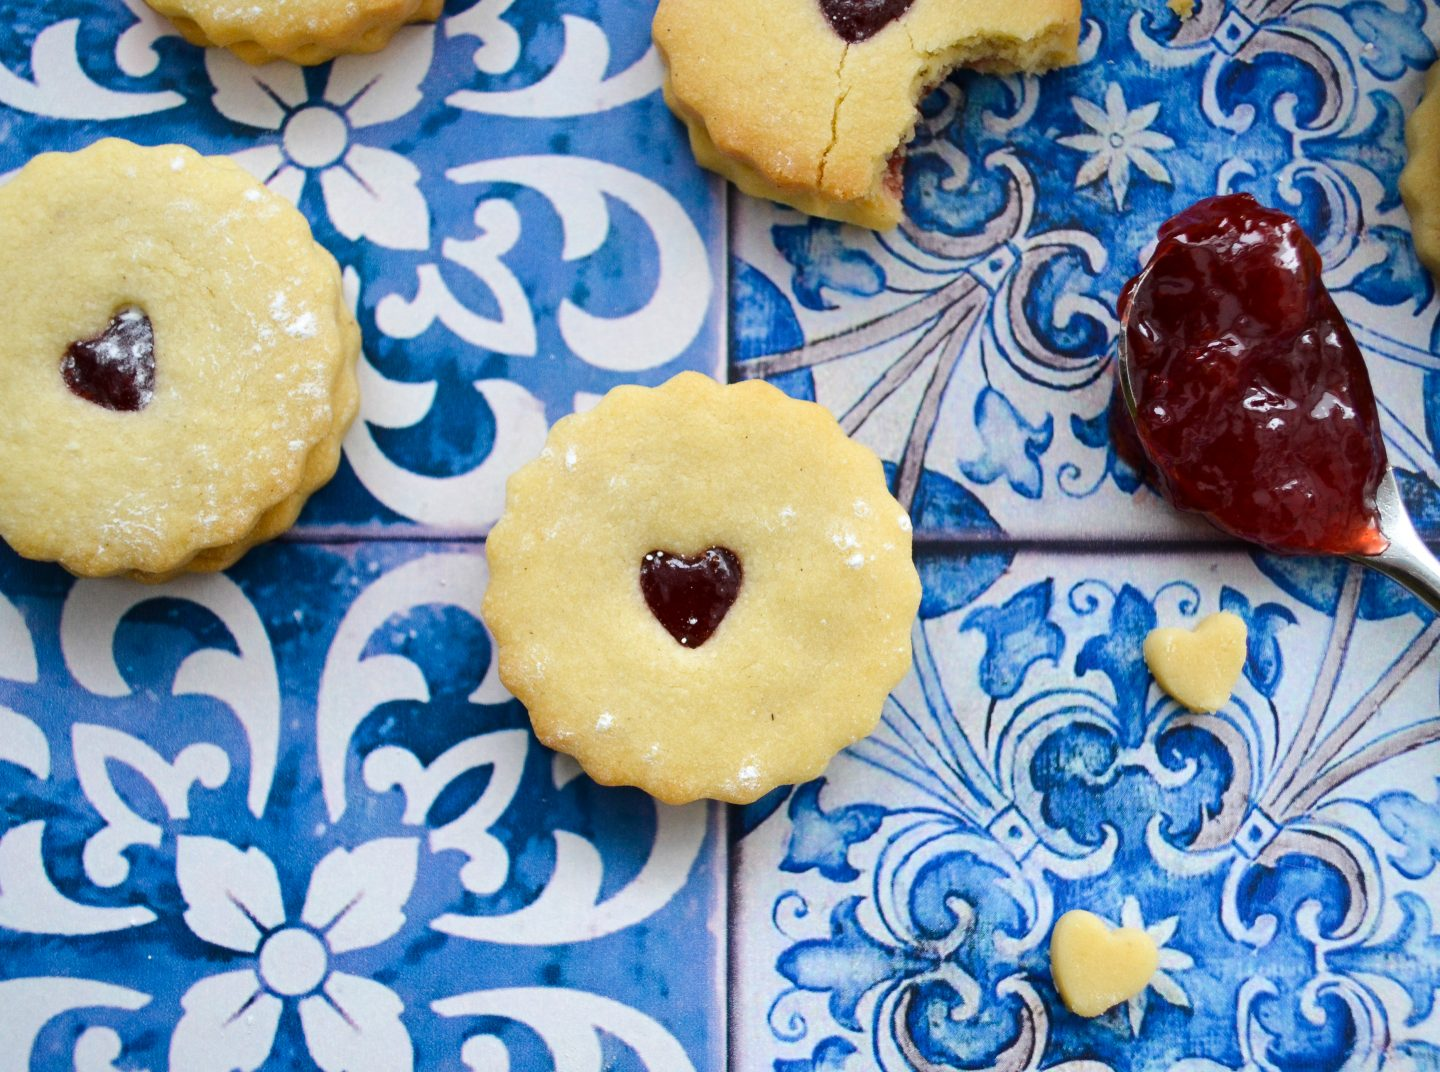 homemade jammie dodger recipe